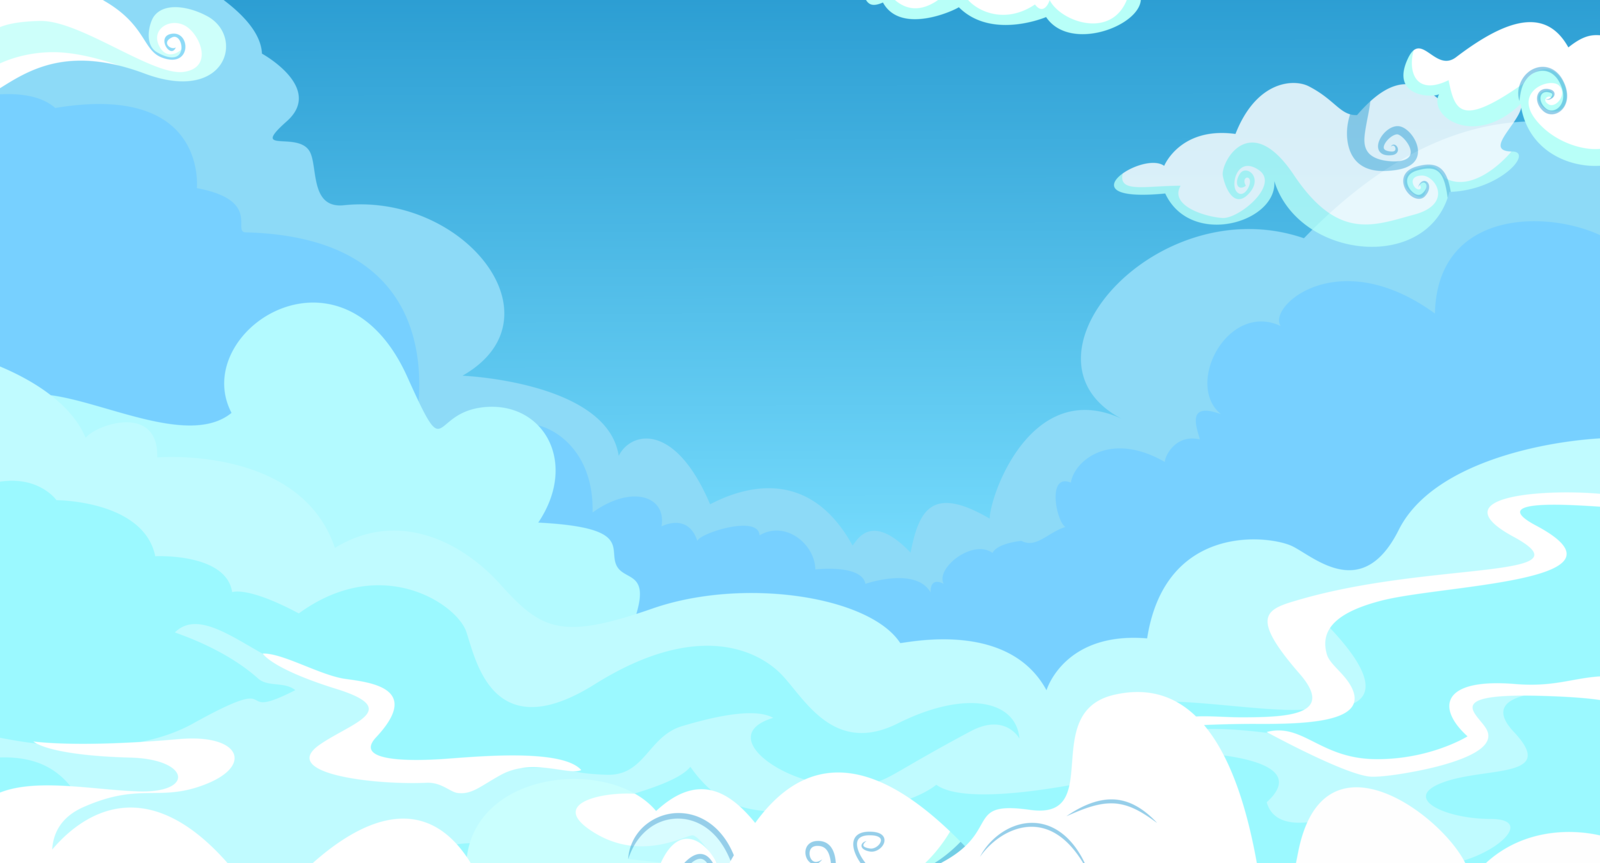 Clouds clipart blue background Images Clipart Blue Clip on